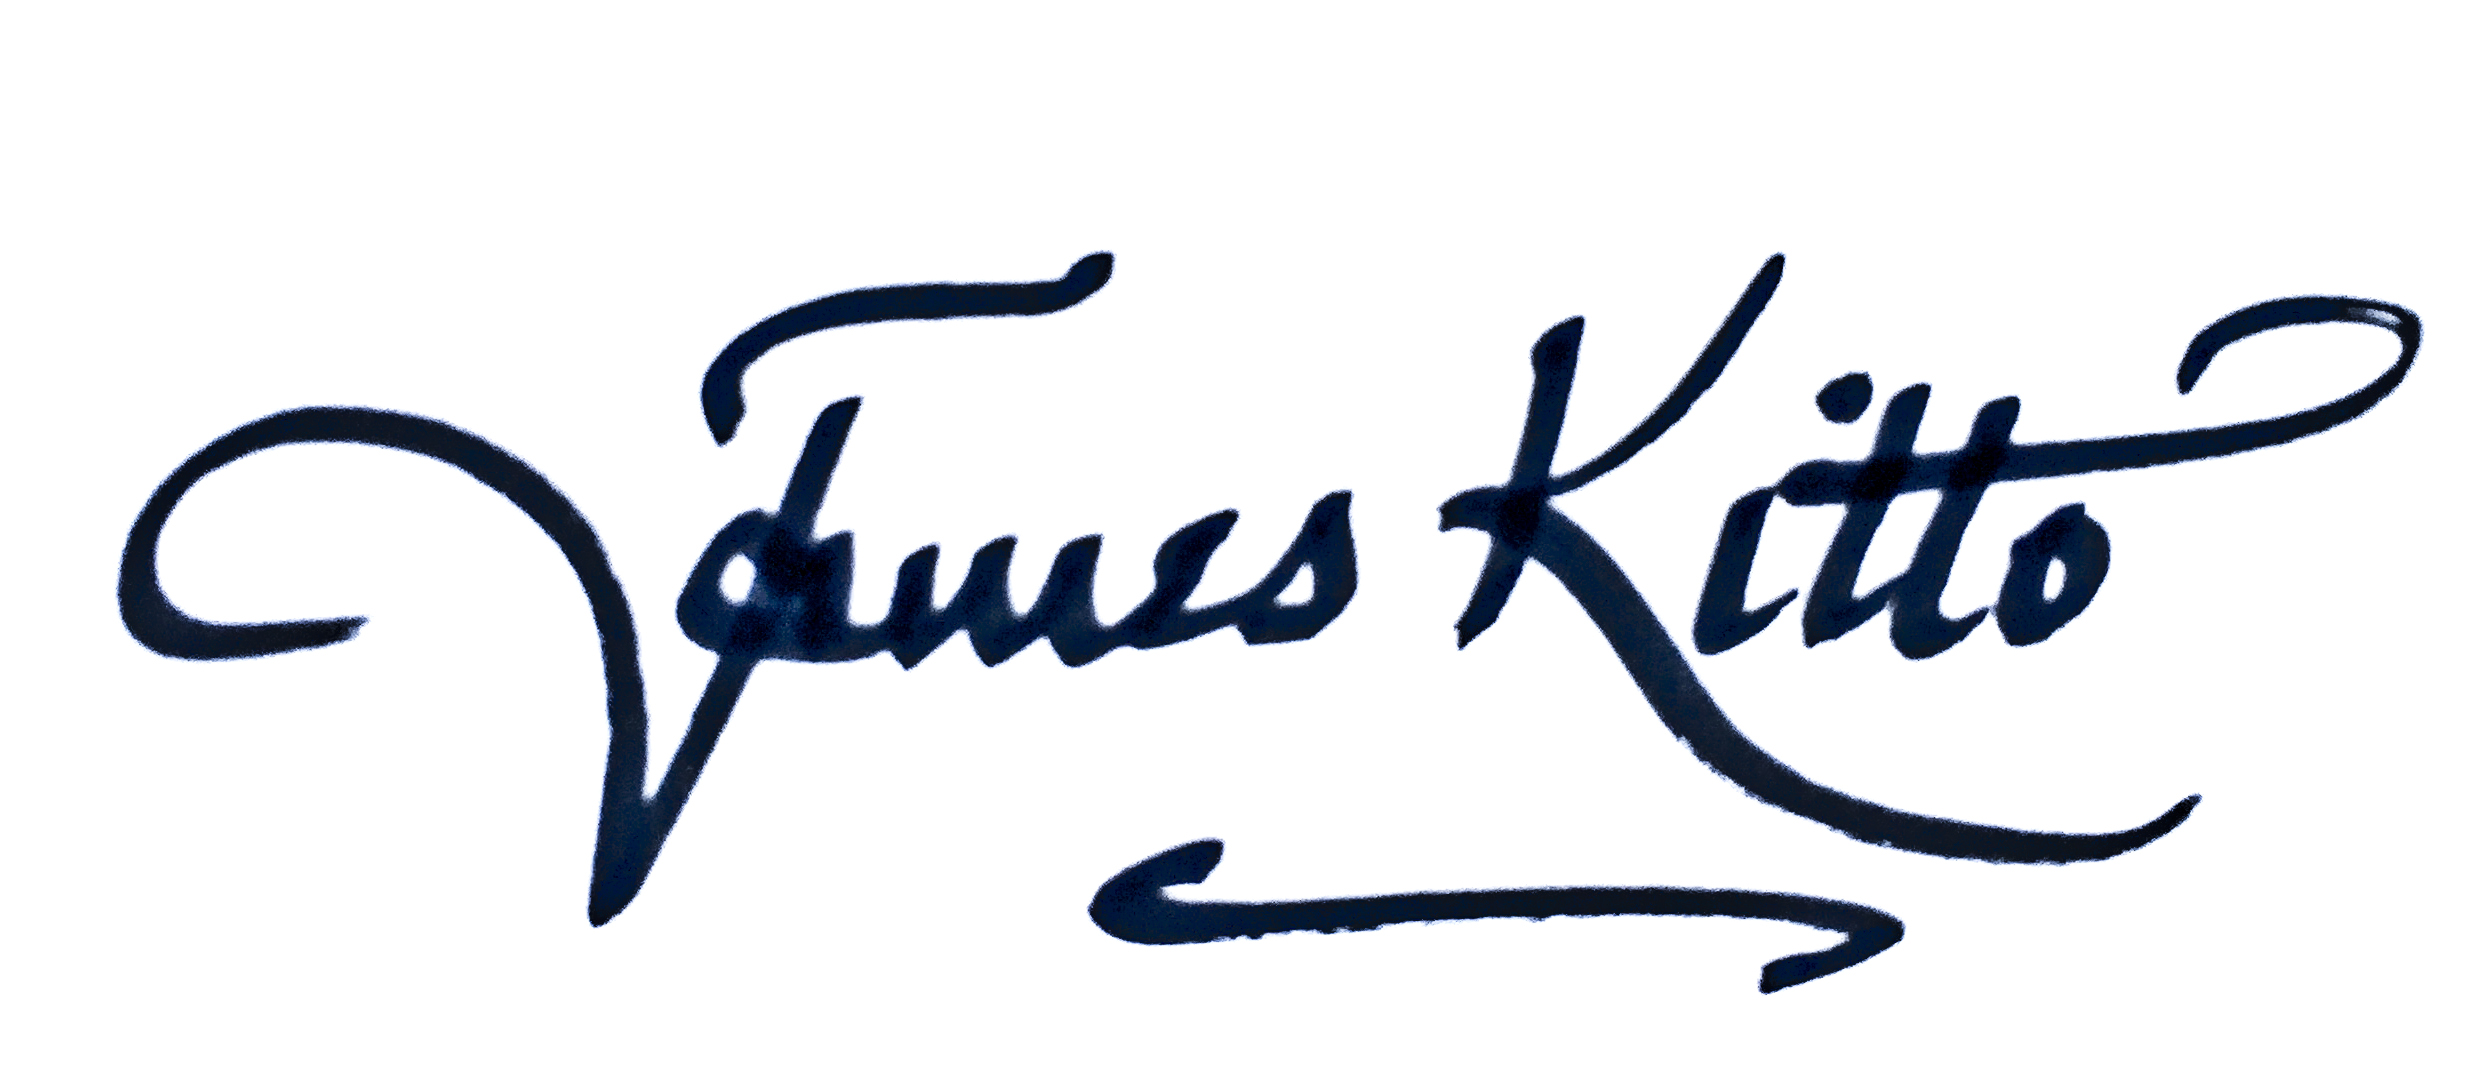 James Kitto's Signature